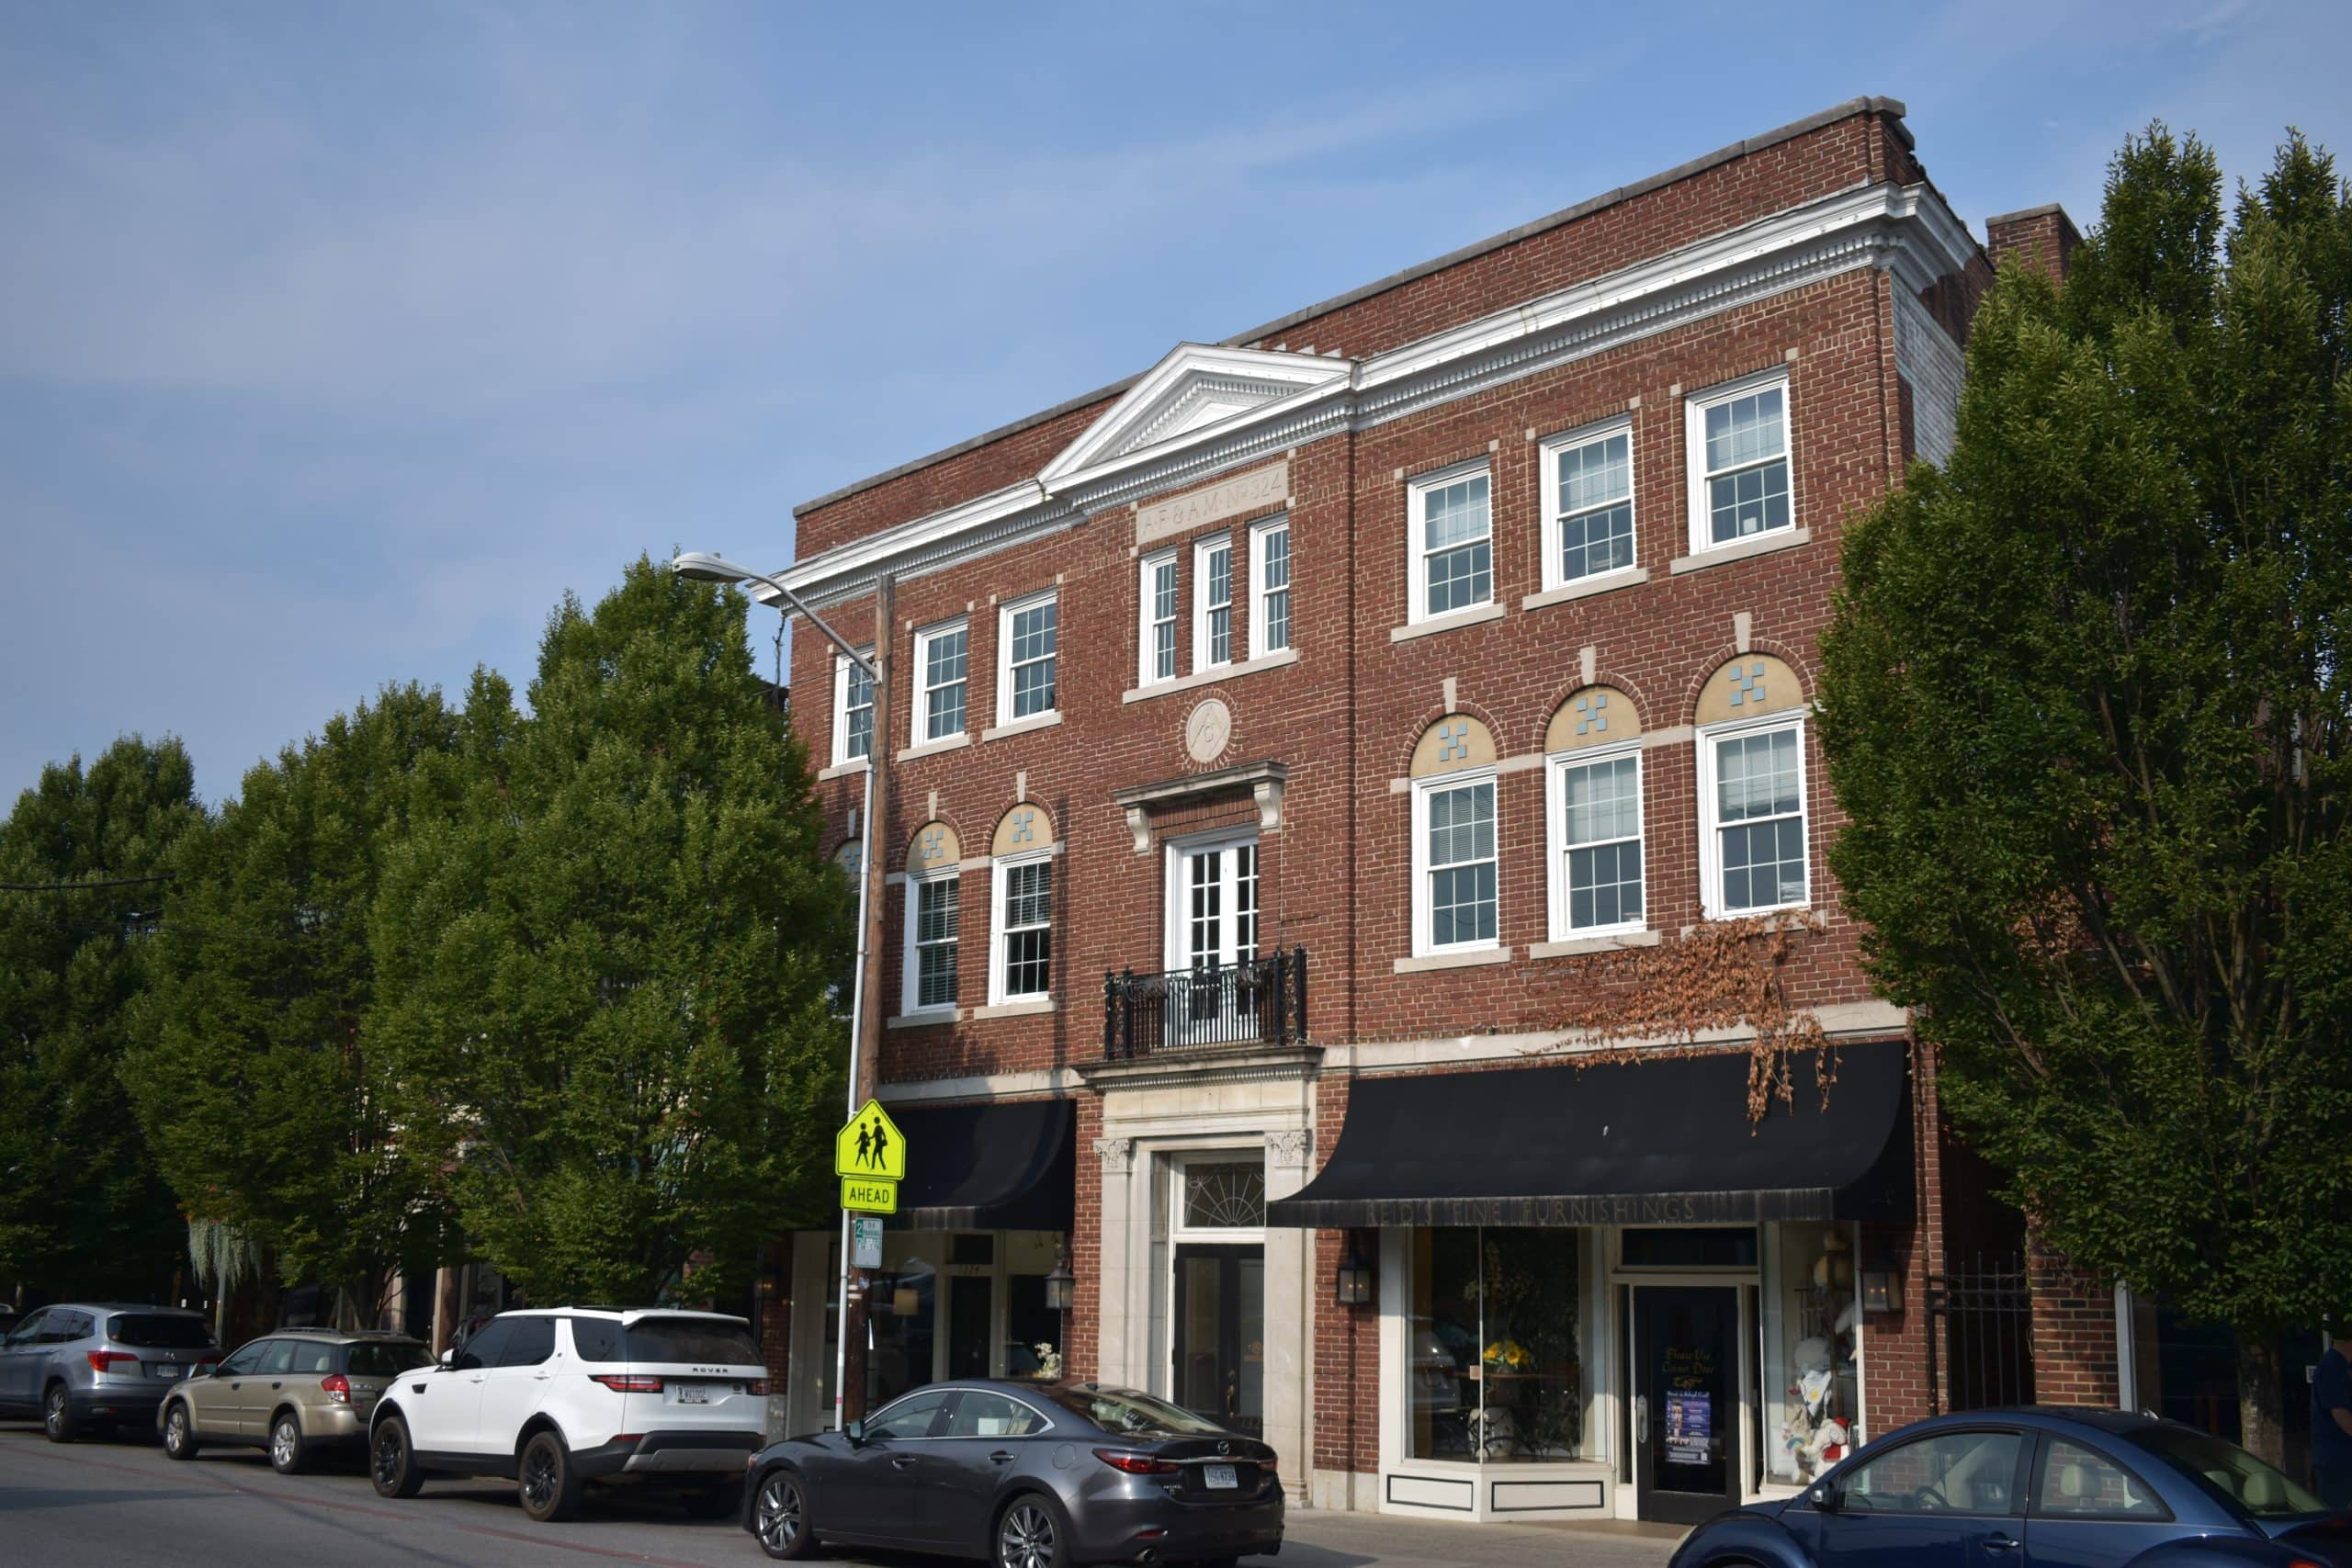 Grandin Road Commercial Historic District scaled